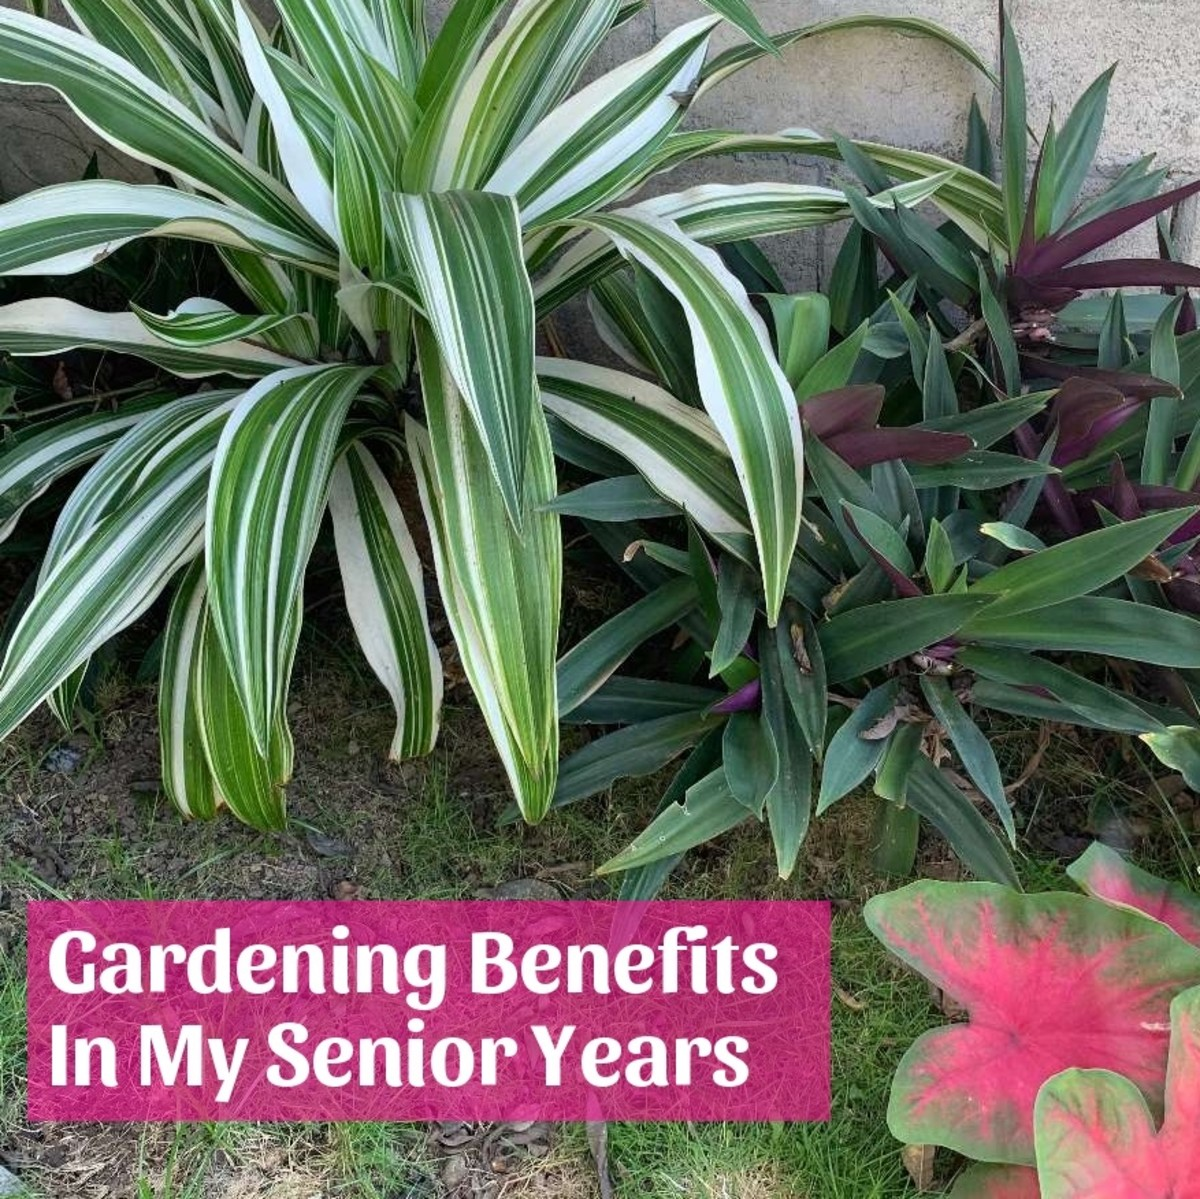 5 Gardening Benefits in My Senior Years